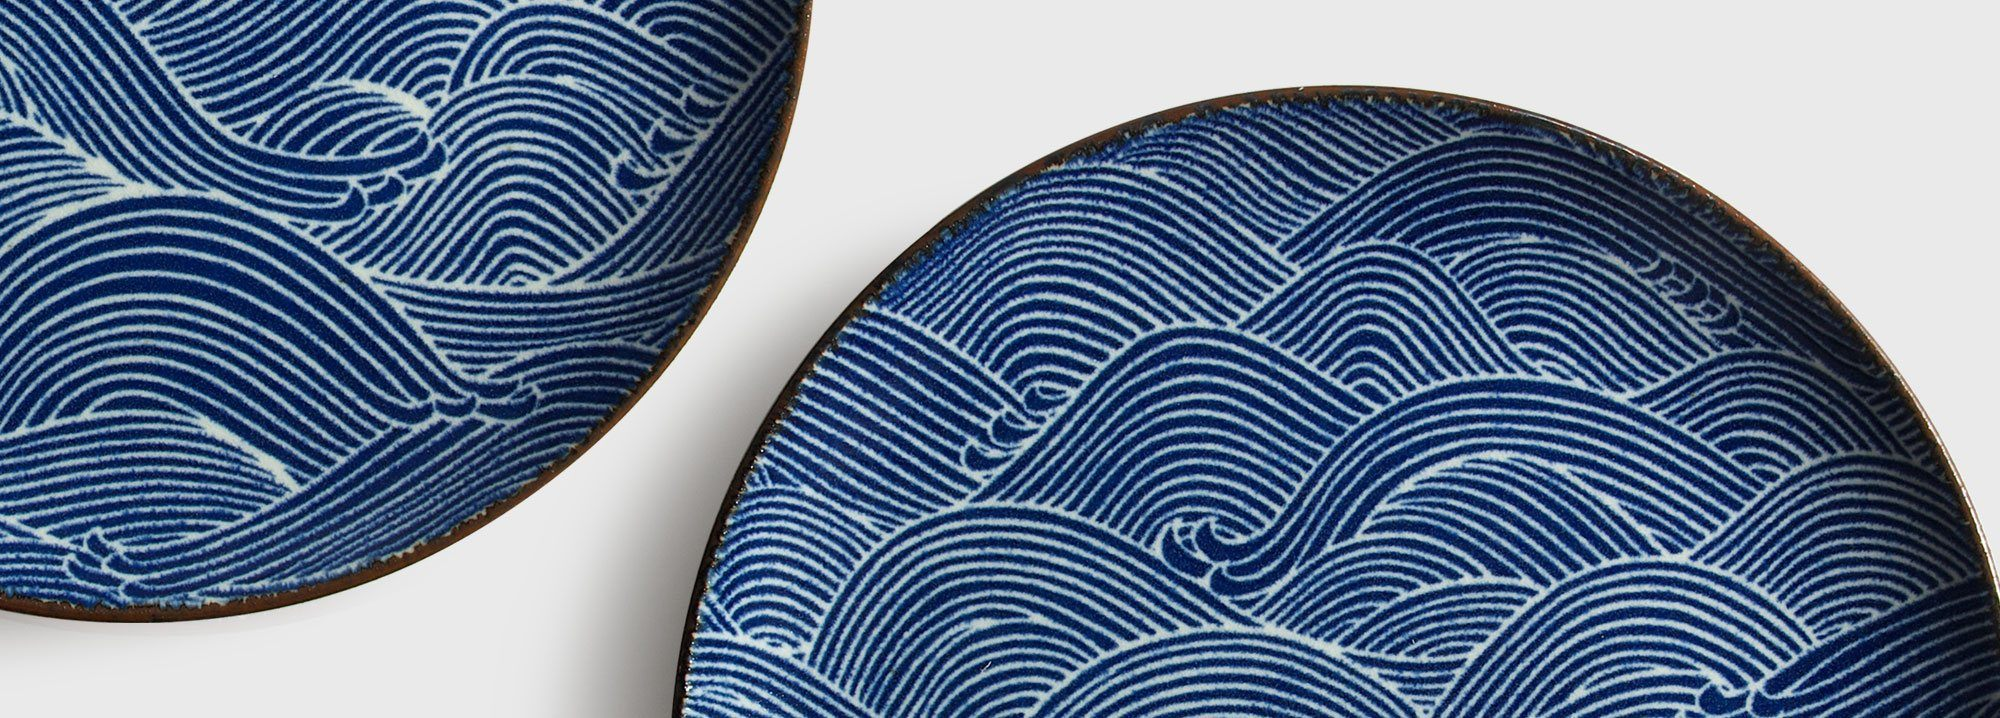 beautifully crafted the aranami wave series brings art to your breakfast lunch dinner and dessert it is blue and white and cool all over